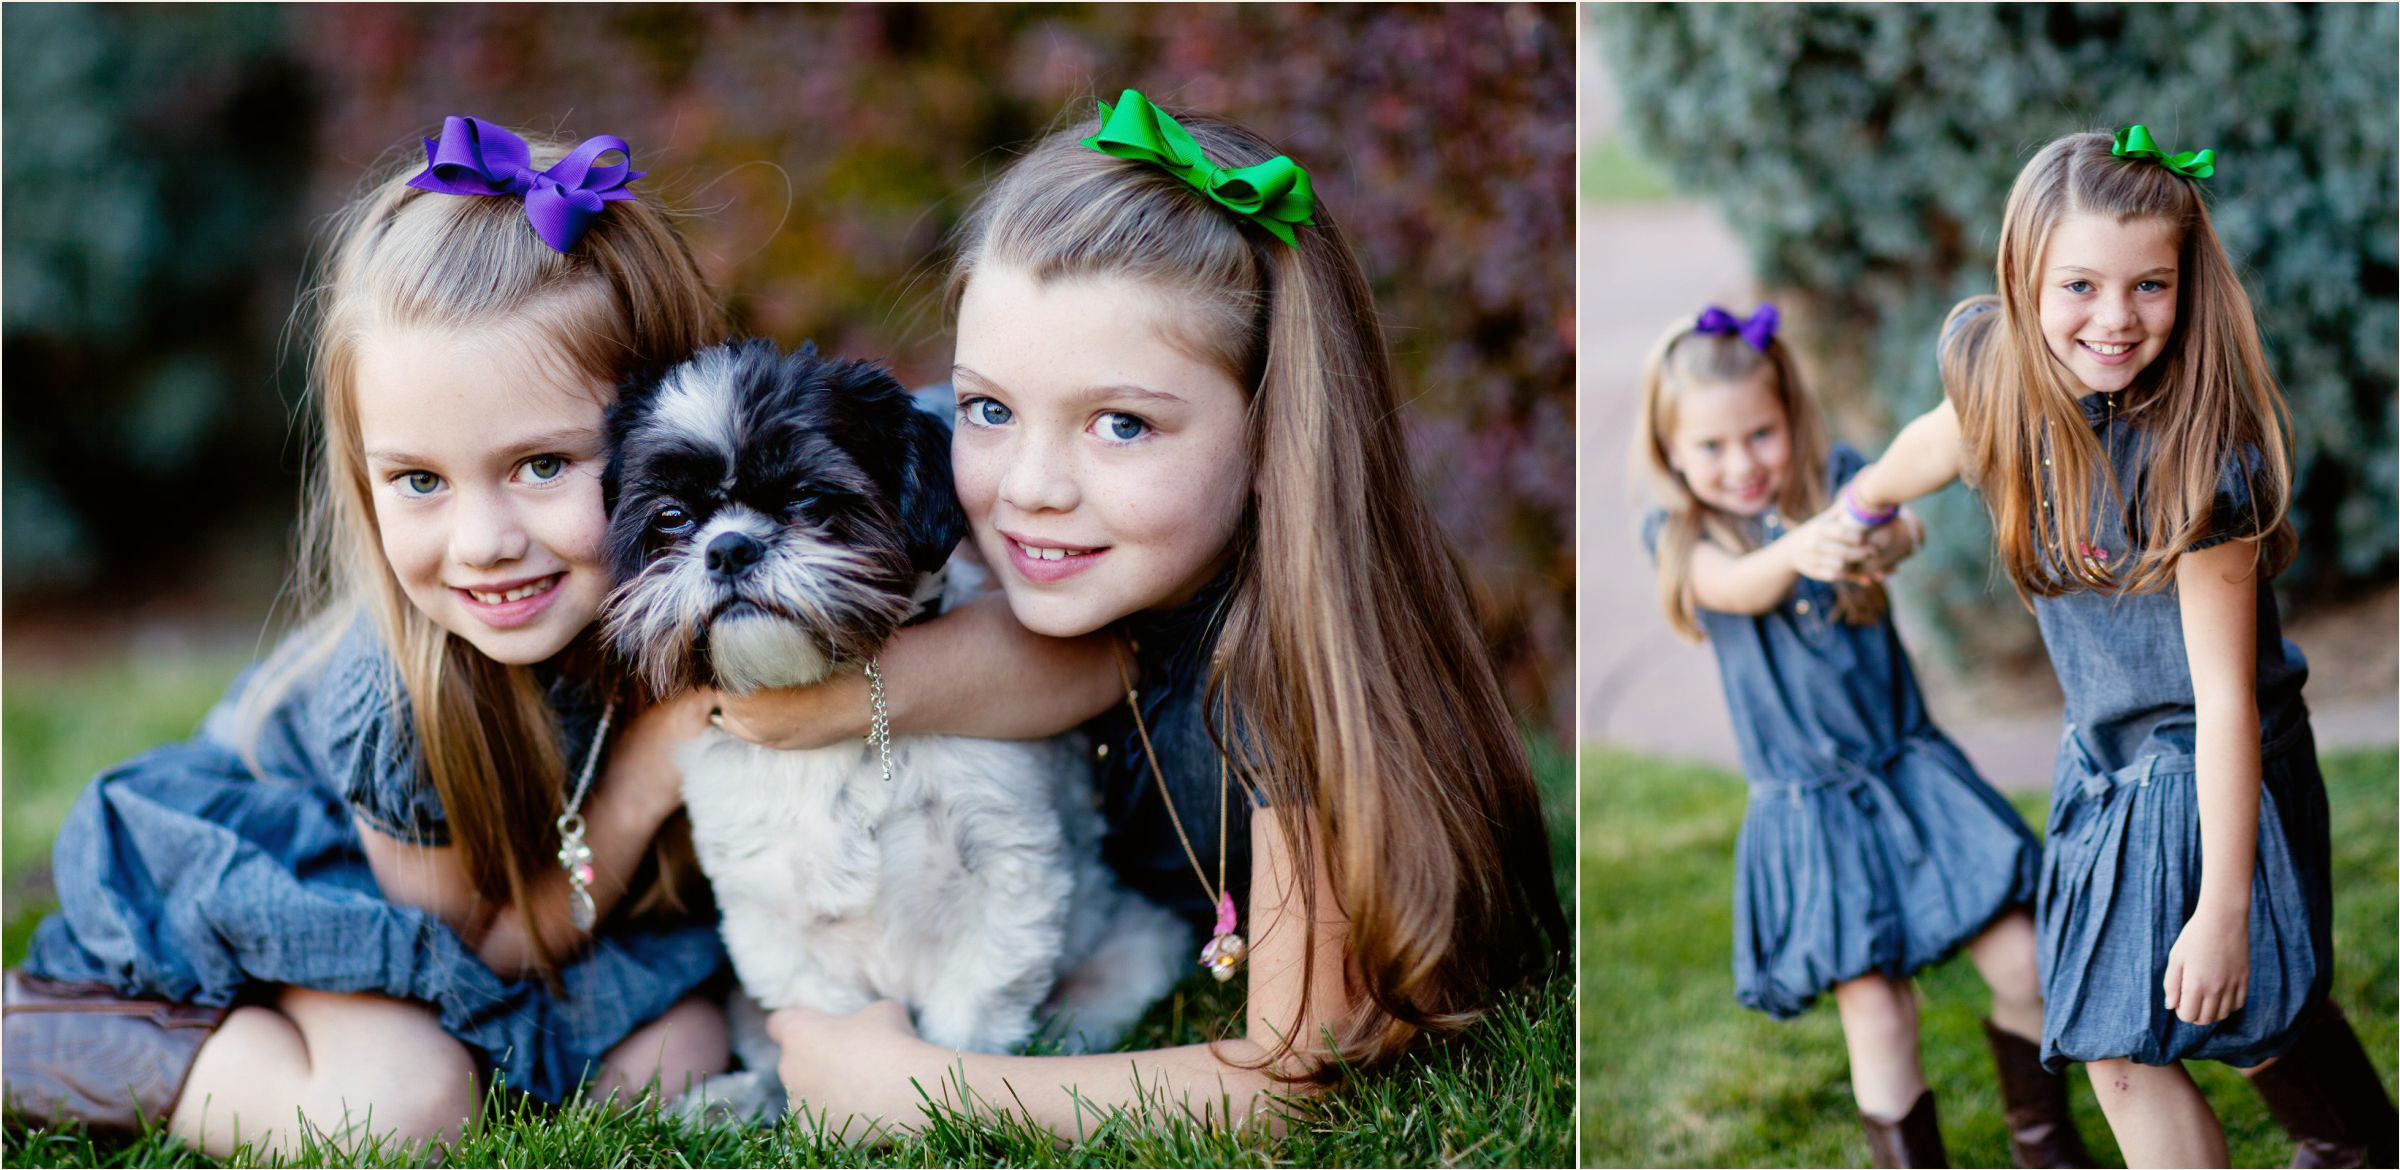 bow-wow-and-bones-sisters-with-style-at-Denver-Unviersity-005